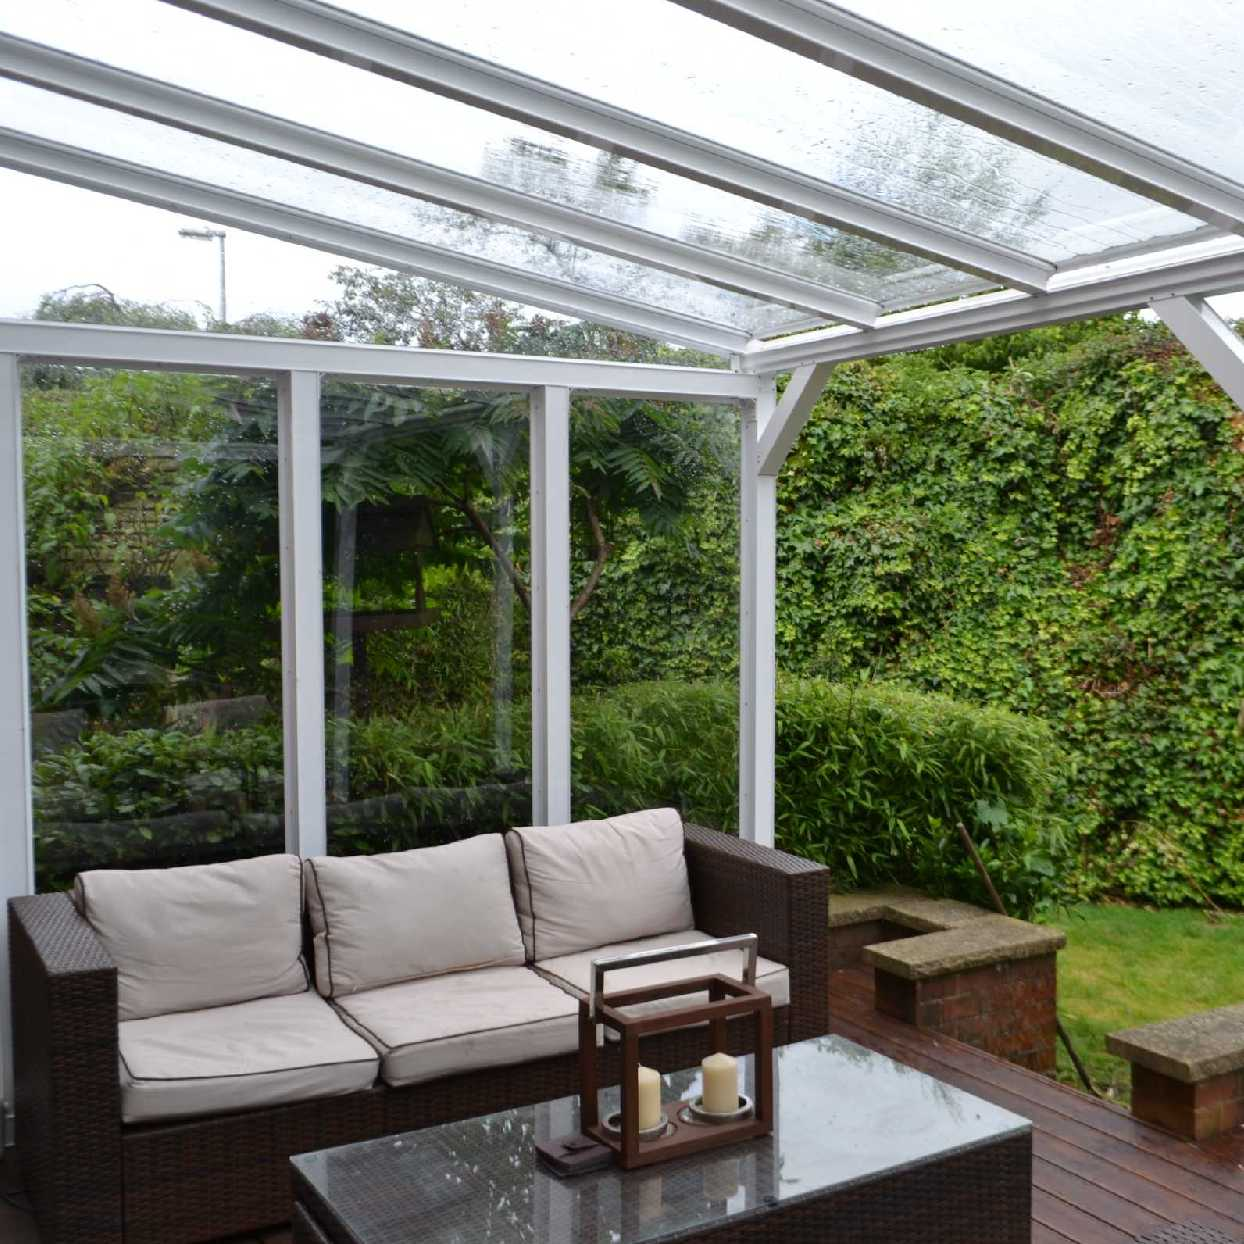 Great selection of Omega Smart White Lean-To Canopy with 16mm Polycarbonate Glazing - 11.6m (W) x 2.0m (P), (5) Supporting Posts